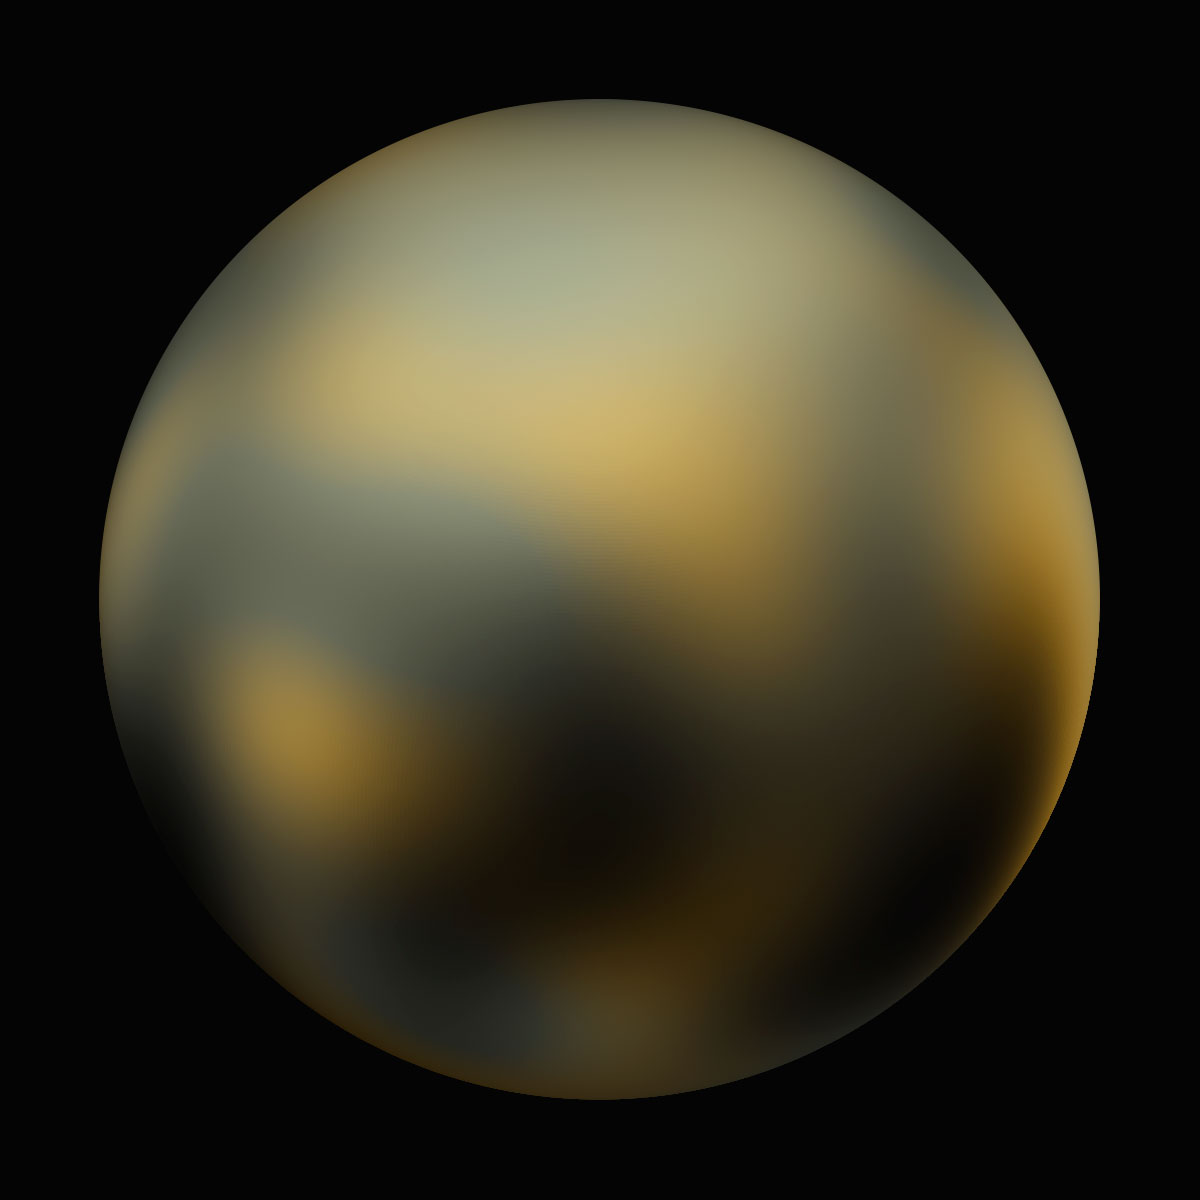 <strong>Pluto</strong>:                                   This image is part of the most detailed set of images ever taken of the distant dwarf planet Pluto. The Hubble images were sharpest view of Pluto until NASA's New Horizons released a new image this year and were invaluable for picking out the planet's most interesting-looking hemisphere for New Horizons to swoop over when it flies by Pluto in 2015.                                                                      Though Pluto is arguably one of the public's favorite planetary objects, it is also the hardest of which to get a detailed portrait because the world is small and very far away. <i>Image released on Feb. 4, 2010.</i>